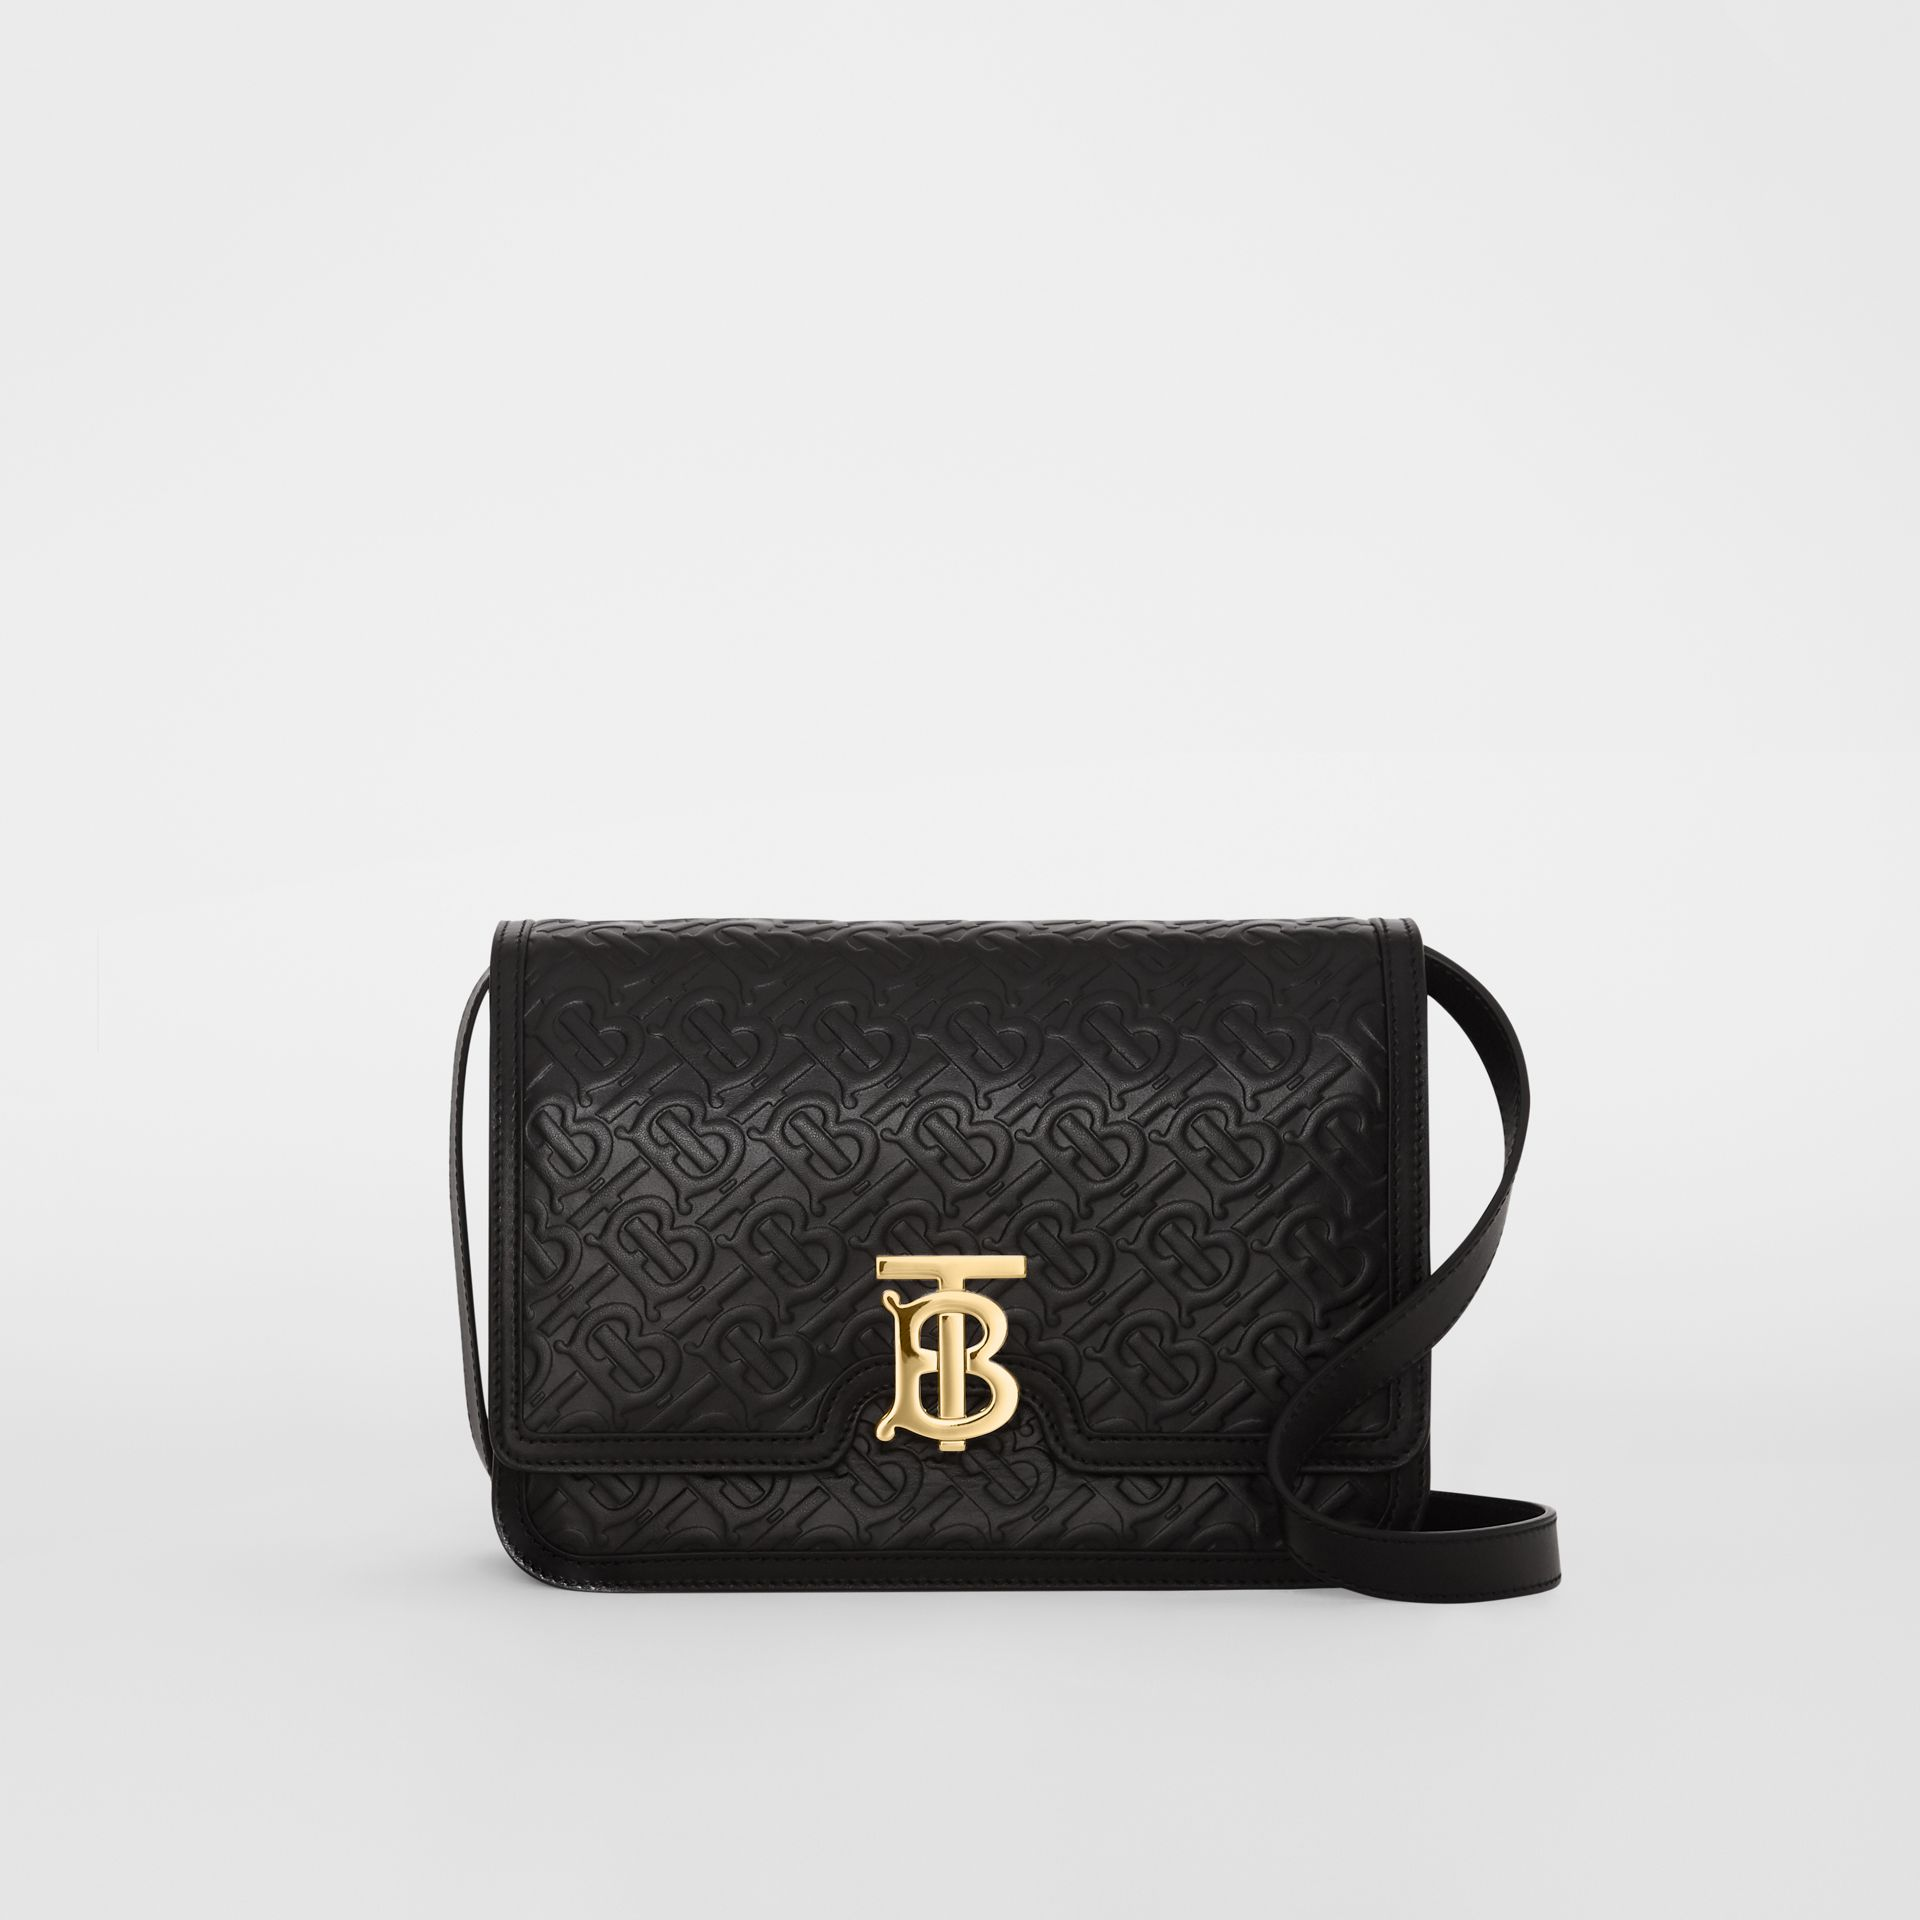 Medium Monogram Leather TB Bag in Black - Women | Burberry Canada - gallery image 0